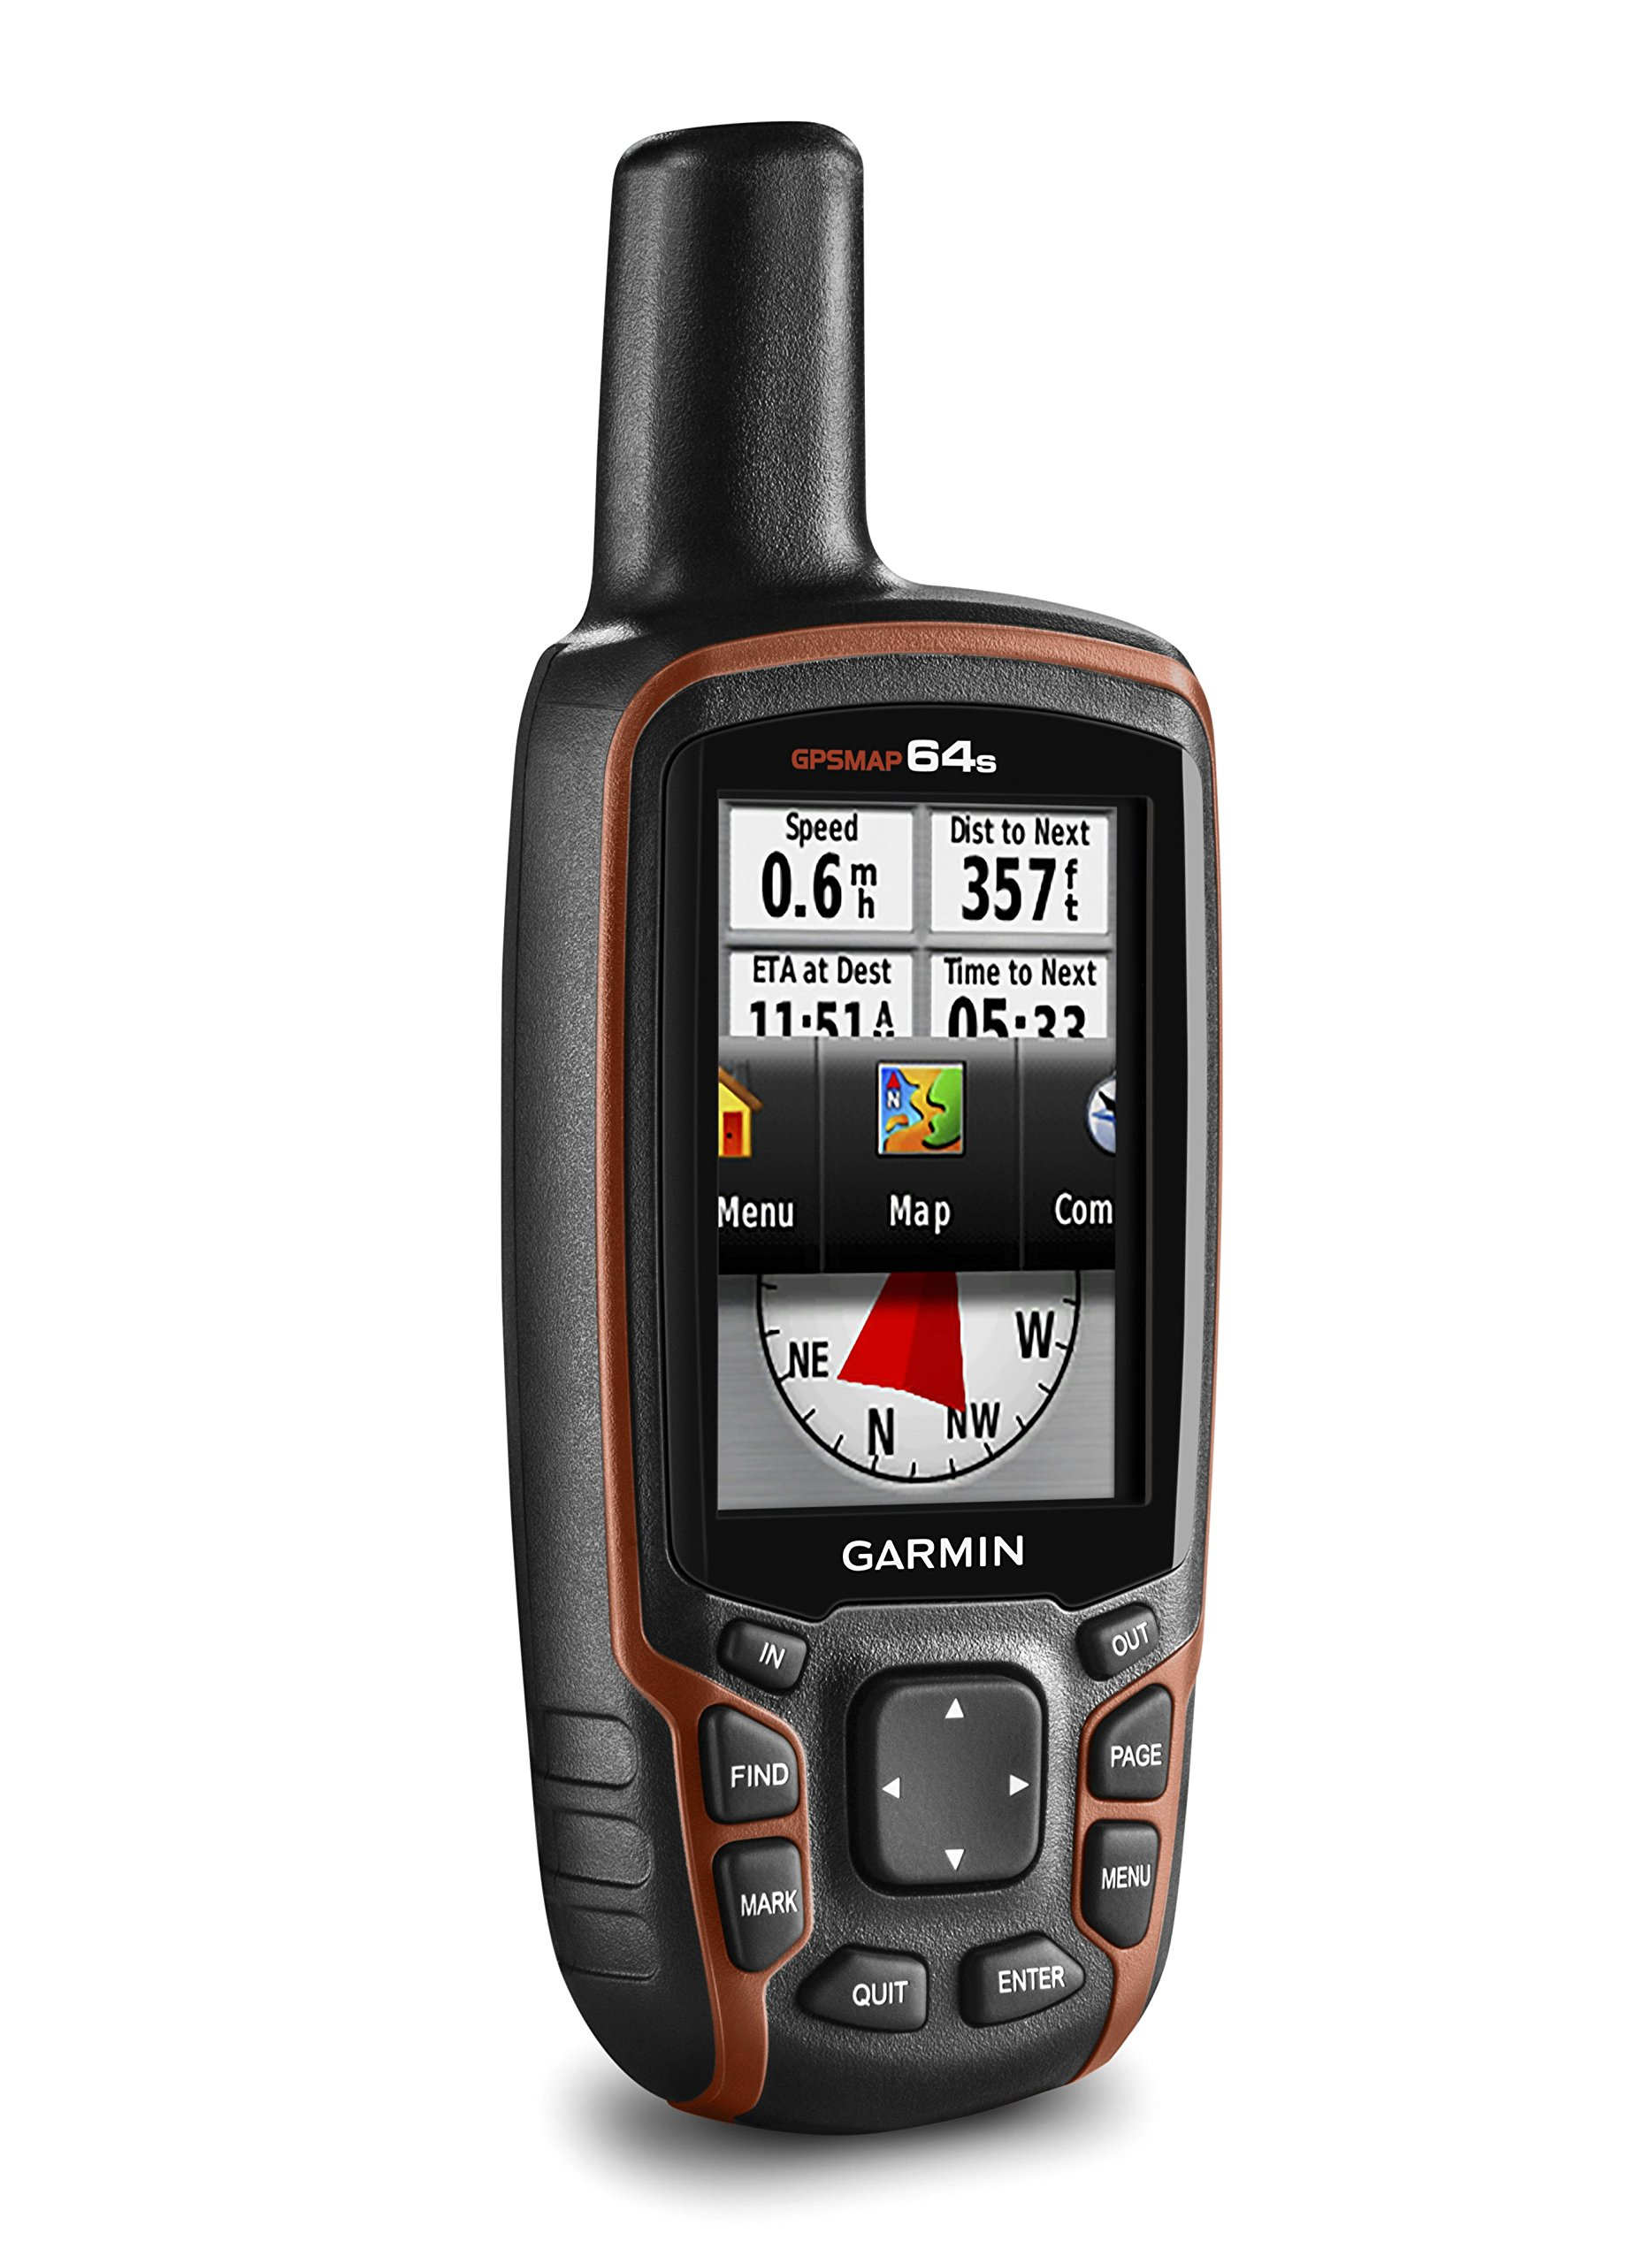 Garmin GPSMAP 64s Handheld Navigator,Black/Red 5